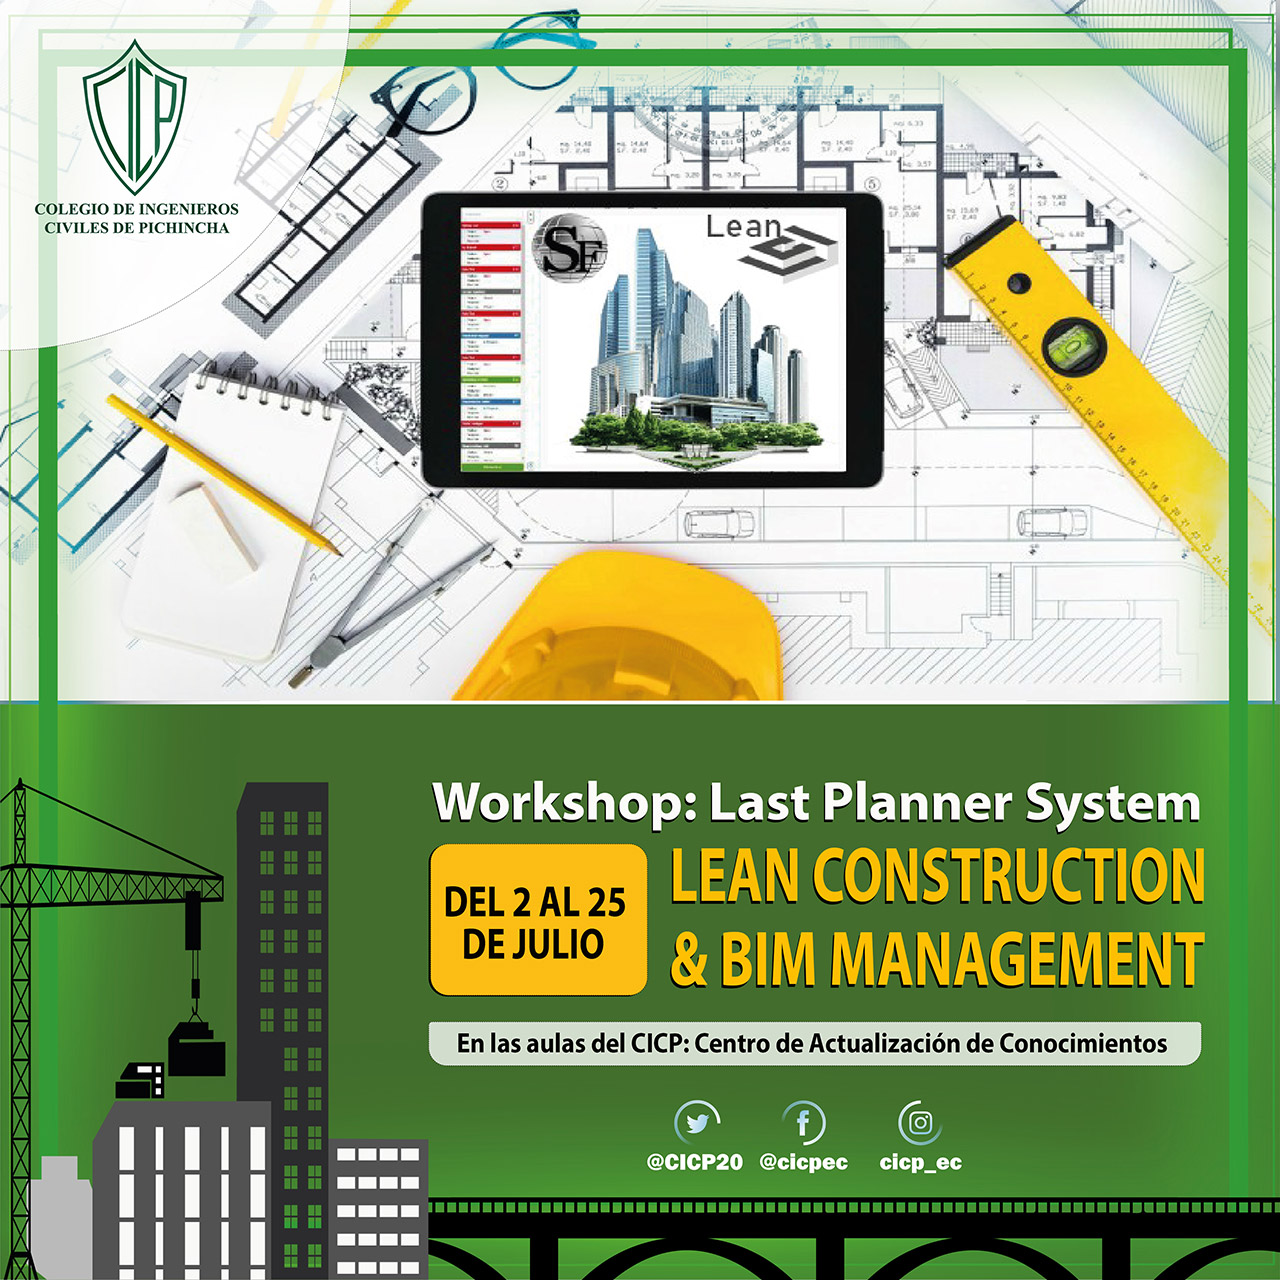 Lean Construction & BIM Management